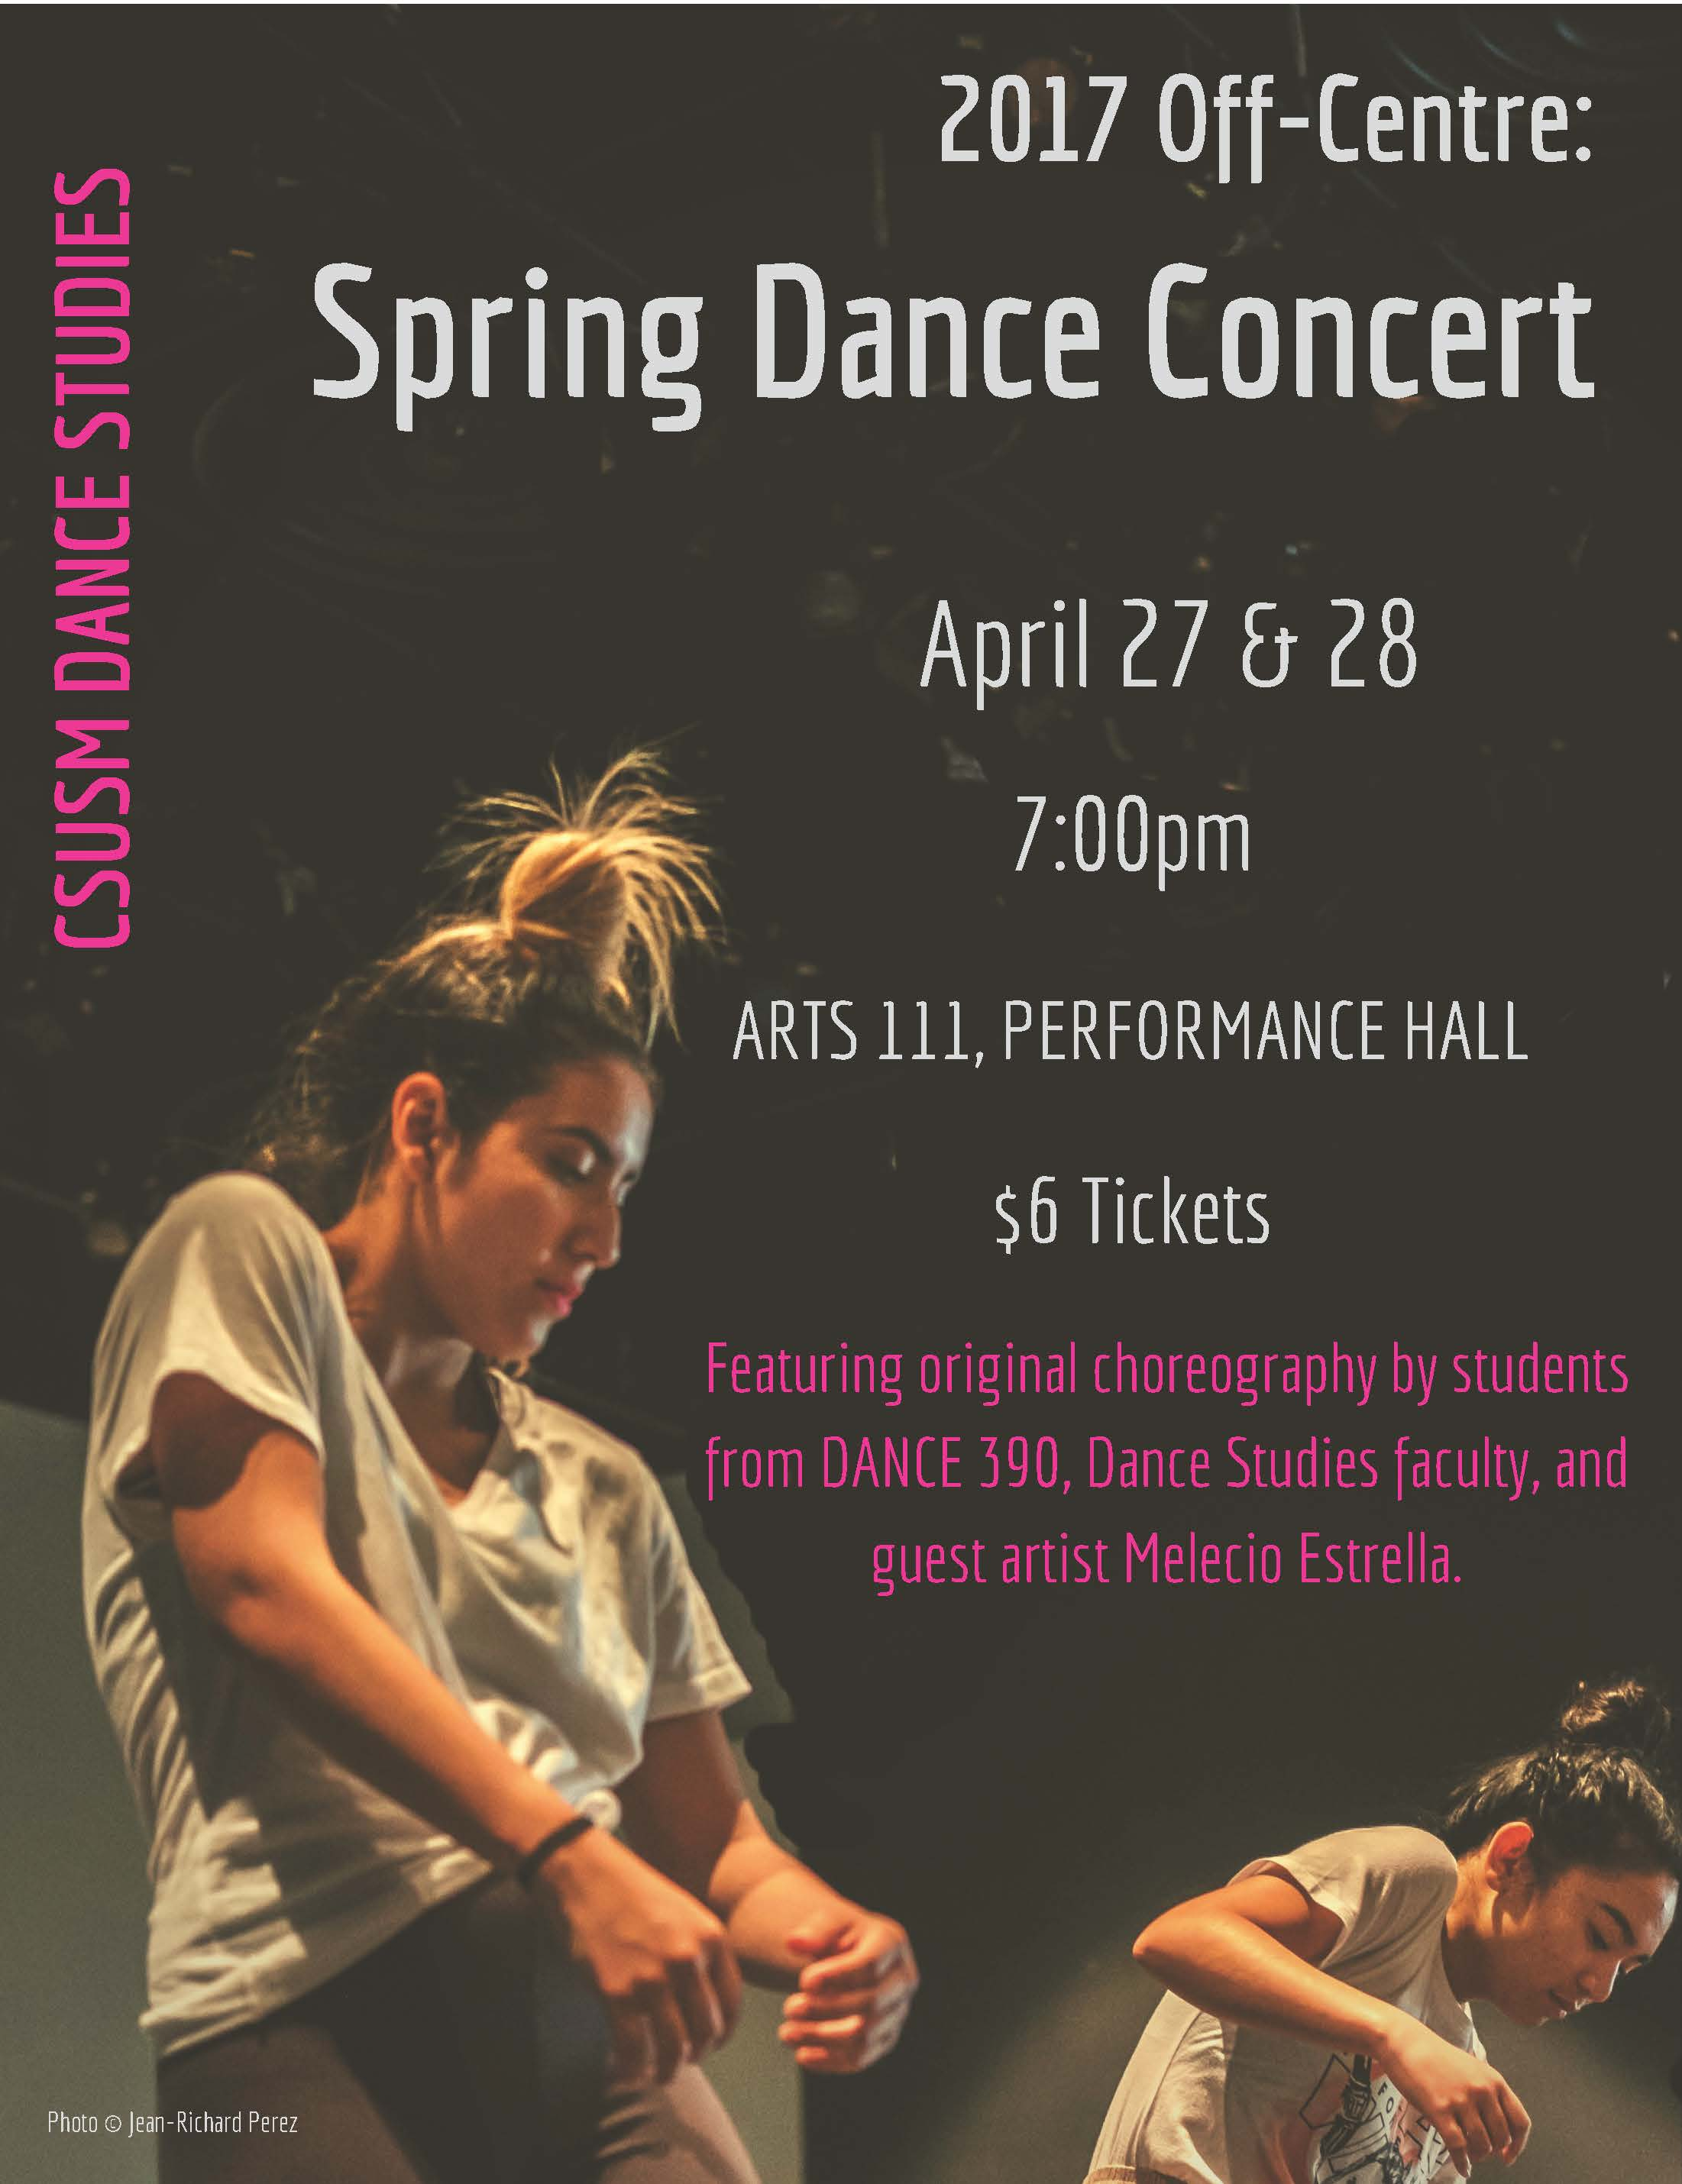 Spring Dance Concert at CSUSM April 27 and 28